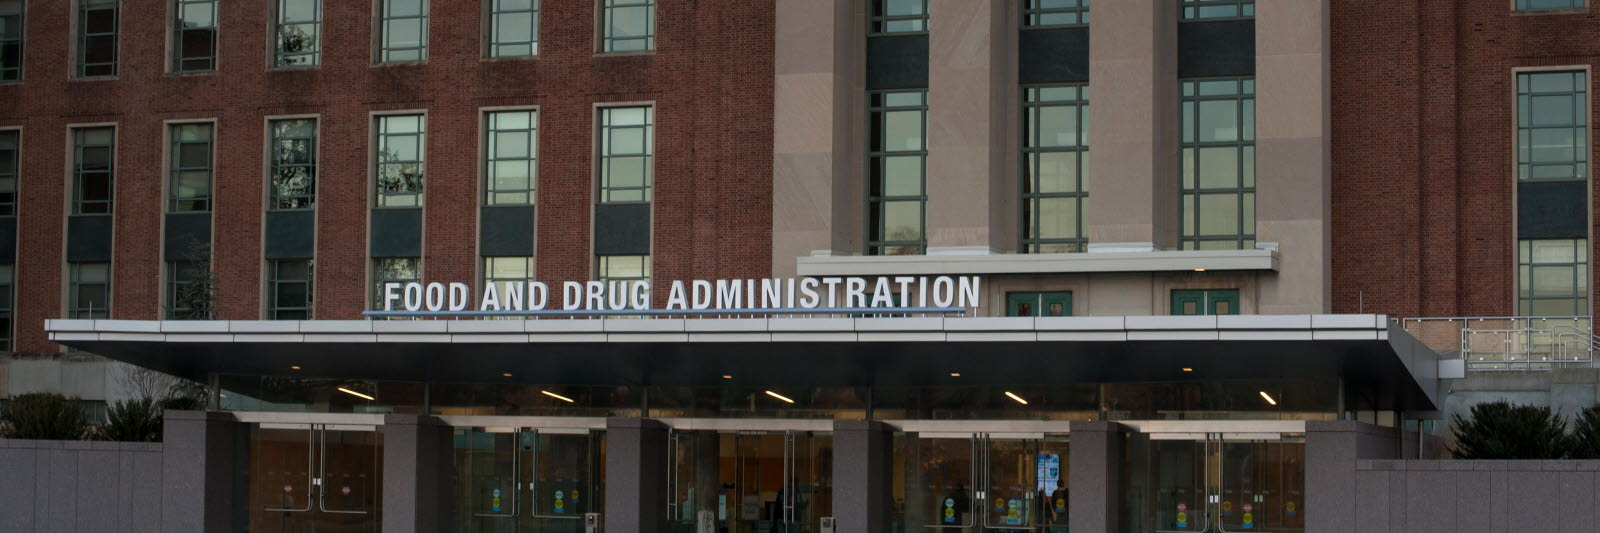 Food and Drug Adminstration building